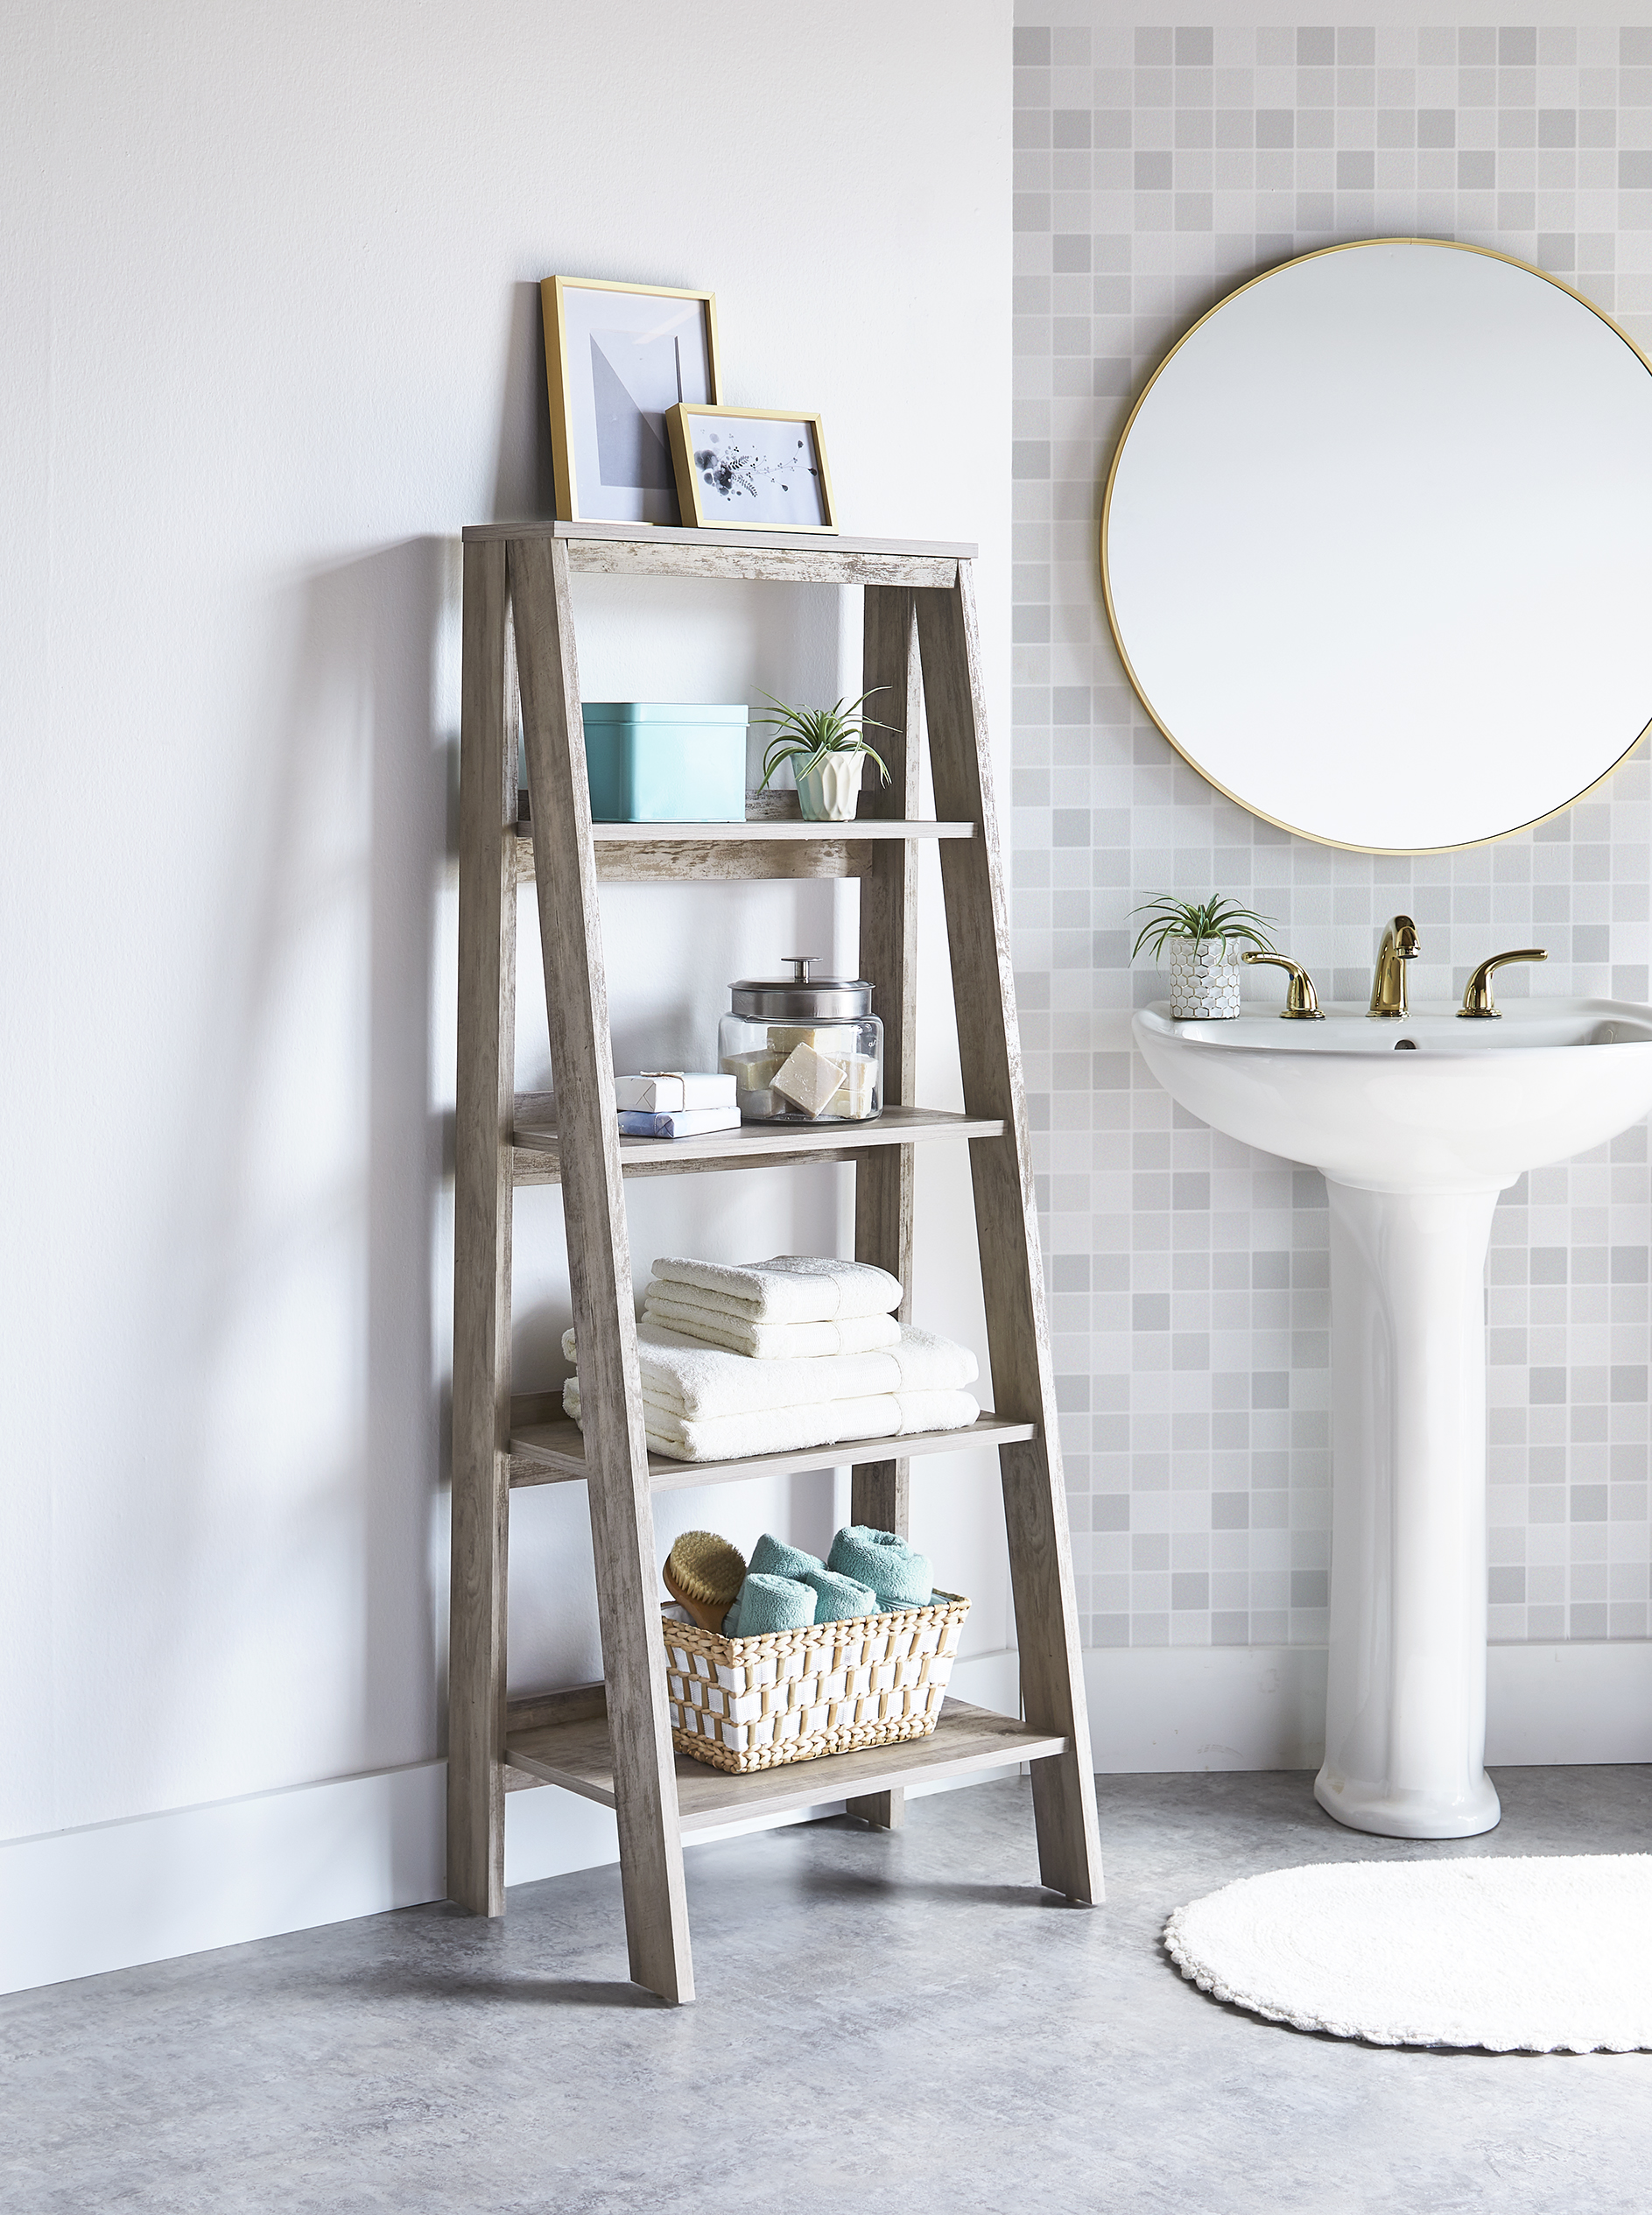 Pictures of Bathroom Ladder Decor